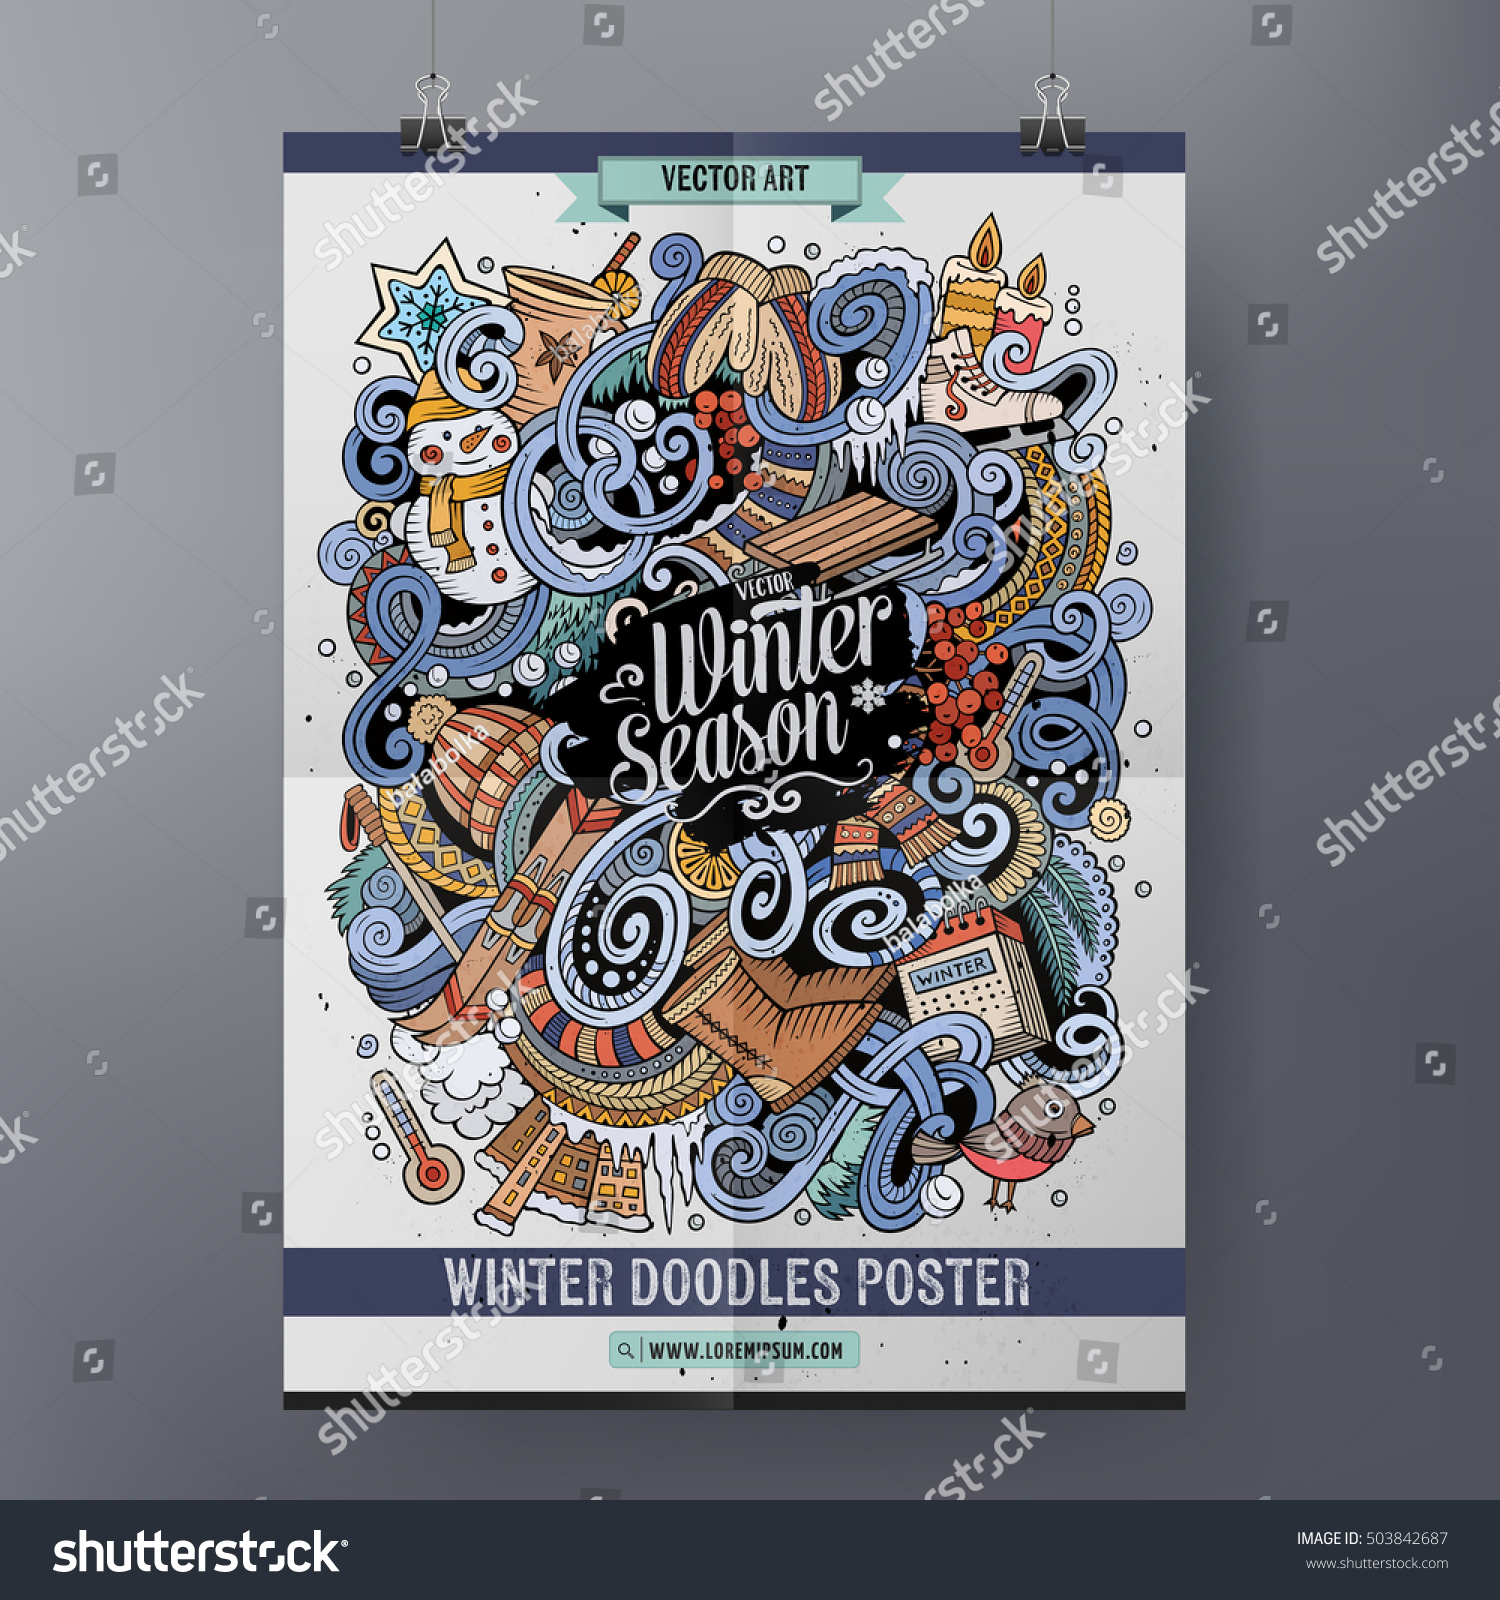 Cartoon colorful hand drawn doodles winter season poster template Very detailed with lots of objects illustration Funny vector artwork Corporate identity design